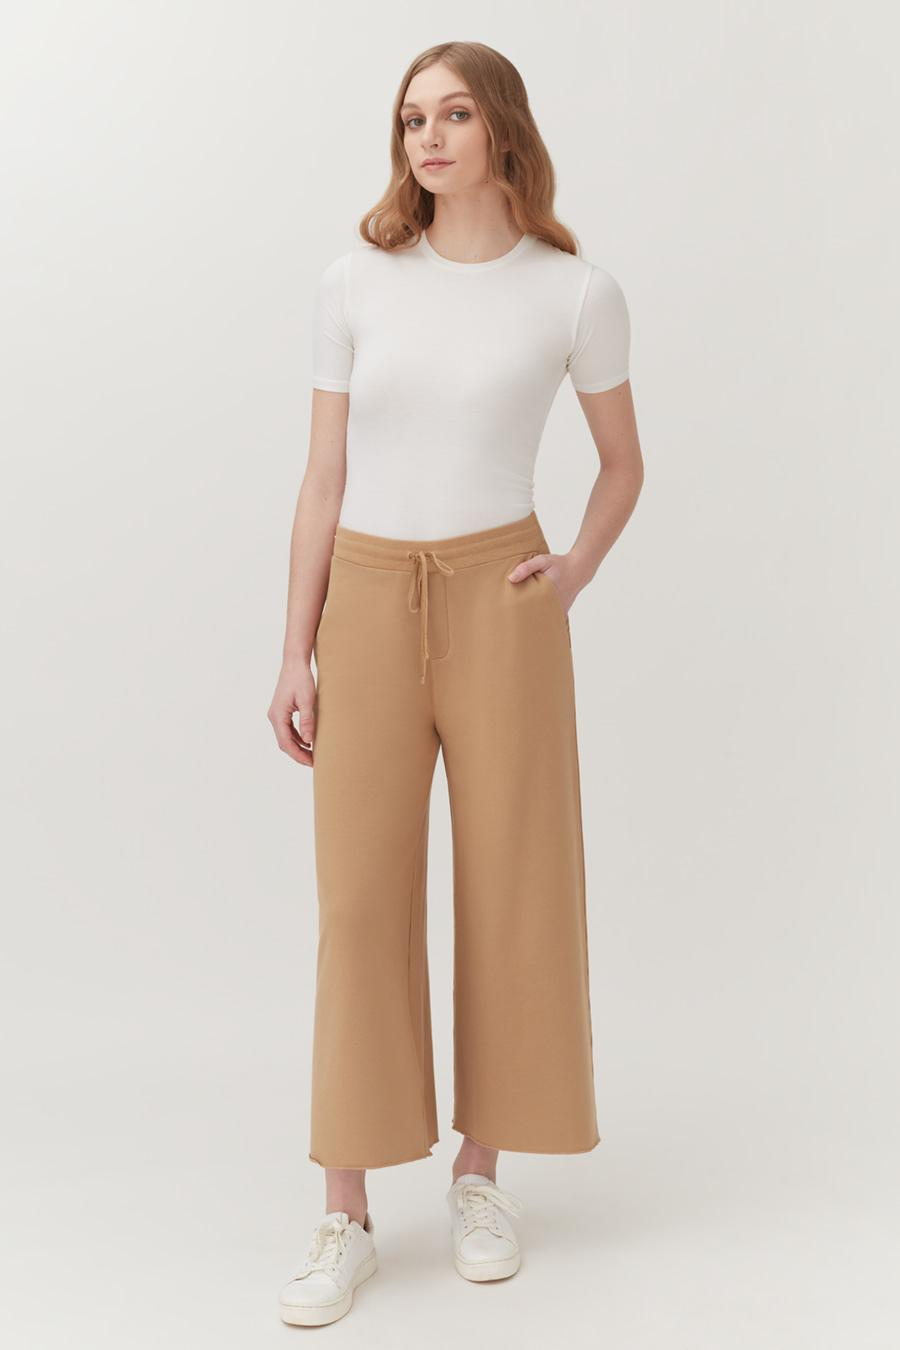 Women's French Terry Wide-Leg Cropped Pant in Camel | Size: 1